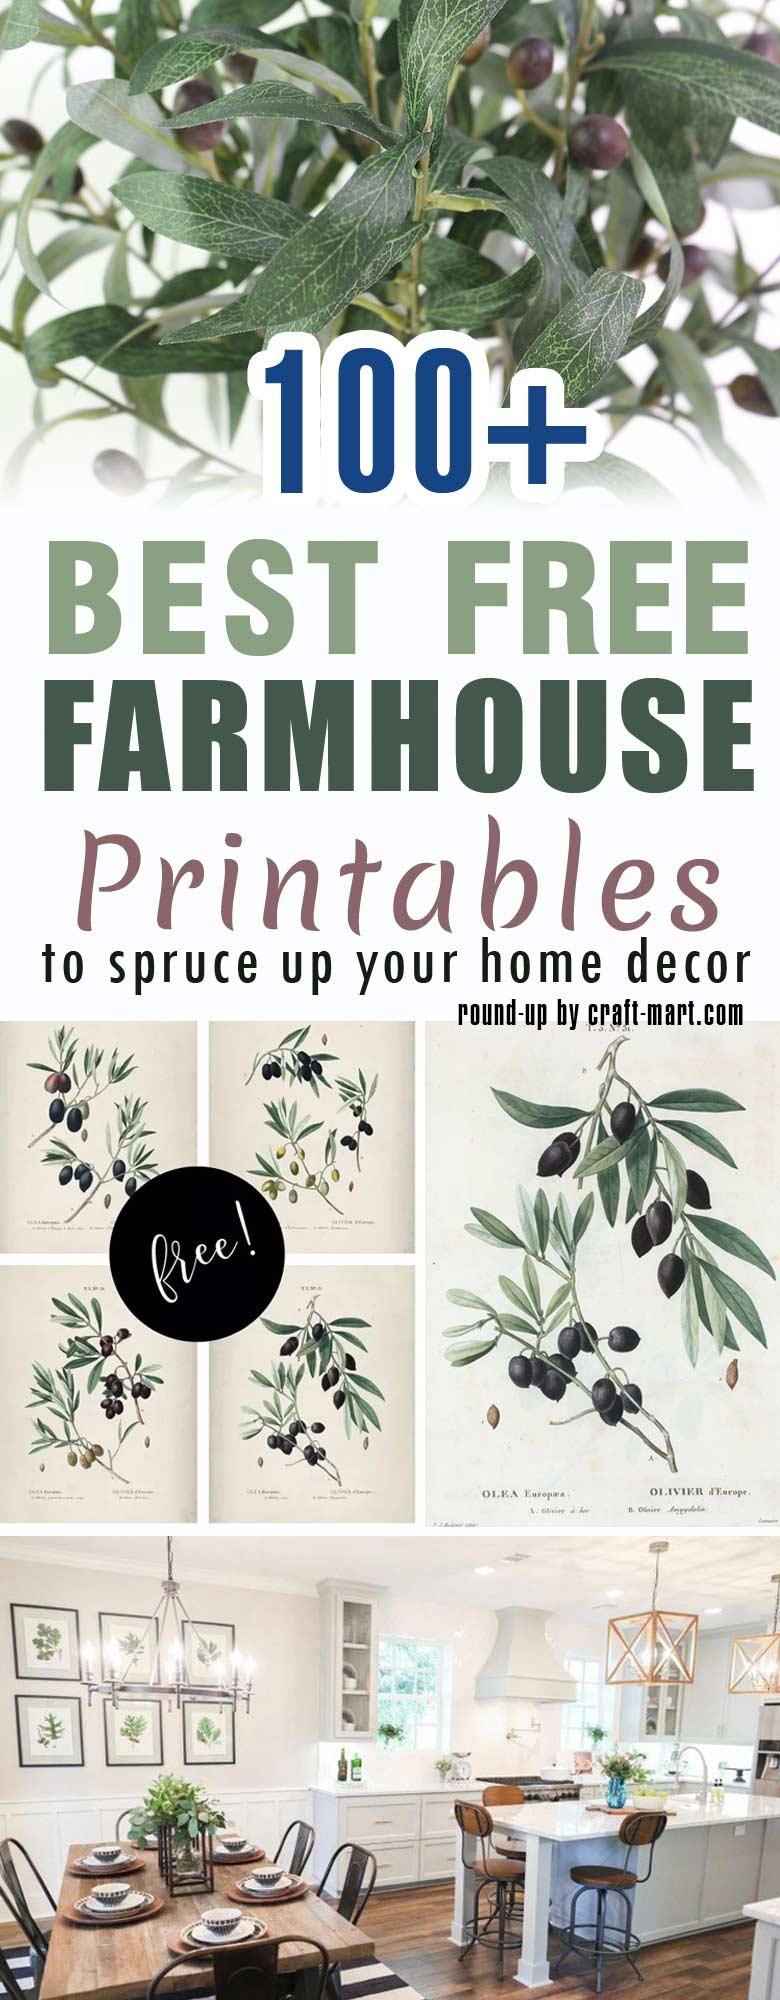 100 best free farmhouse spring printables to spruce up your home decor by craft-mart.com